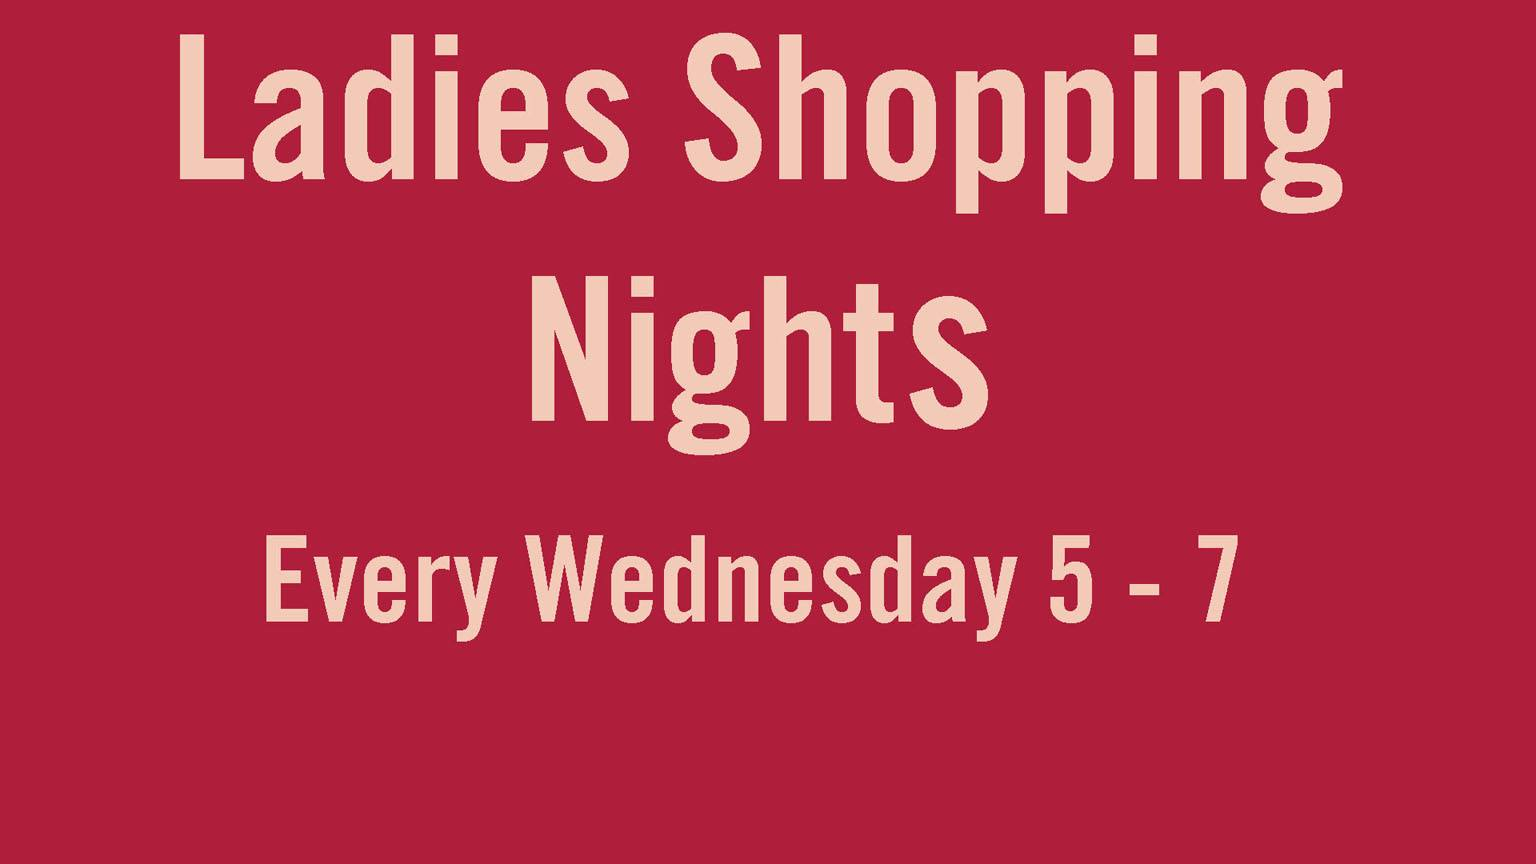 Wednesday is Ladies Shopping Night at Stowe Craft!